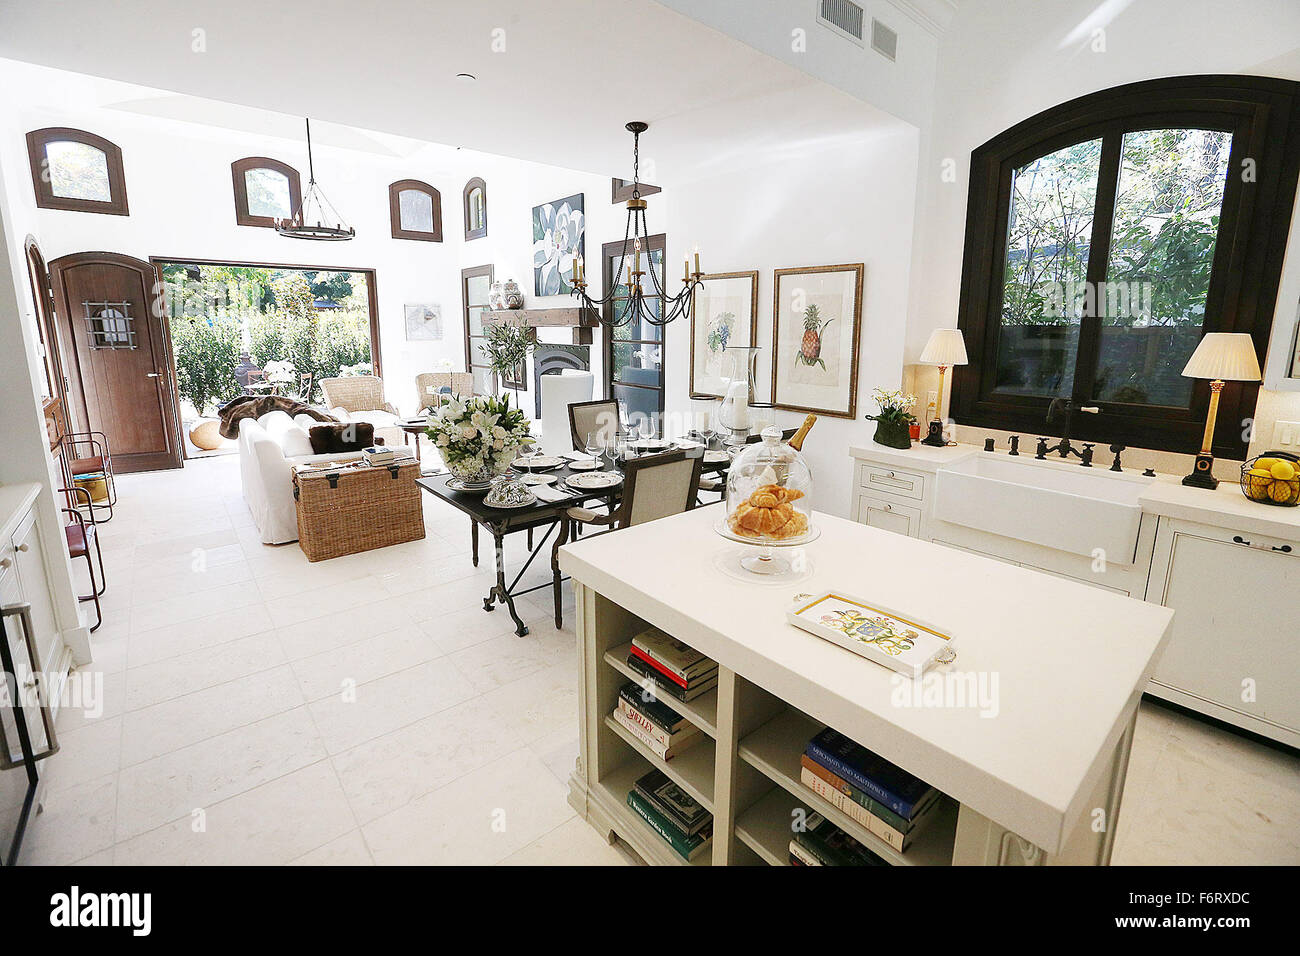 St Helena, CA, USA. 12th Nov, 2015. The kitchen and living room of ...